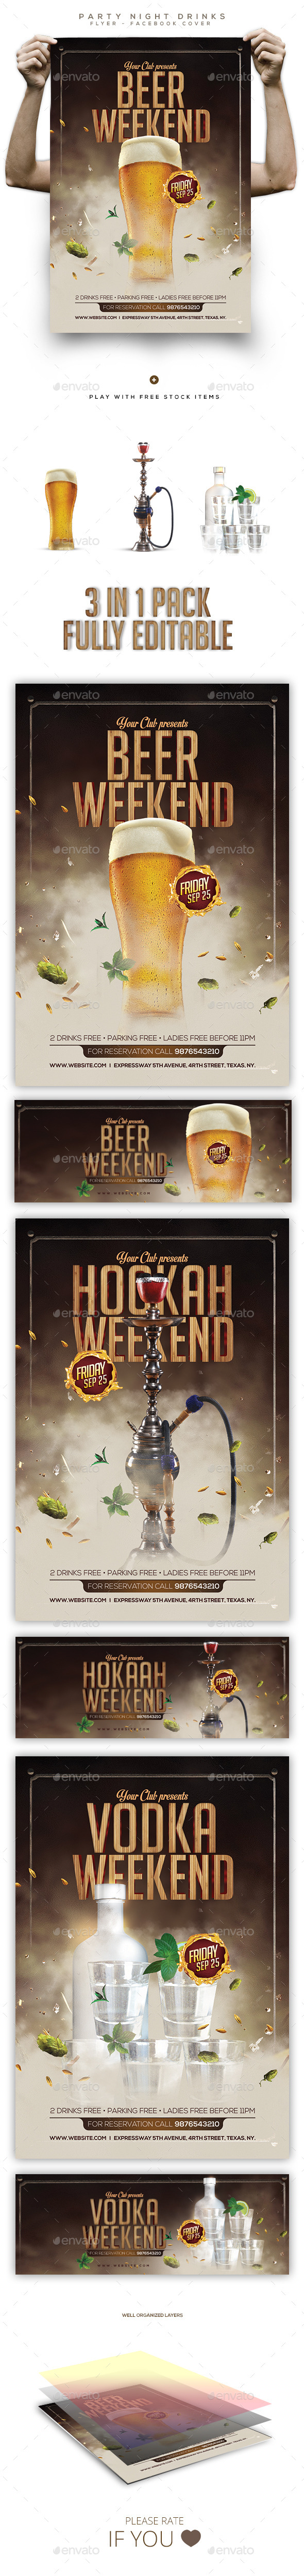 Party Drinks Flyer / Poster / Facebook Cover - Clubs & Parties Events